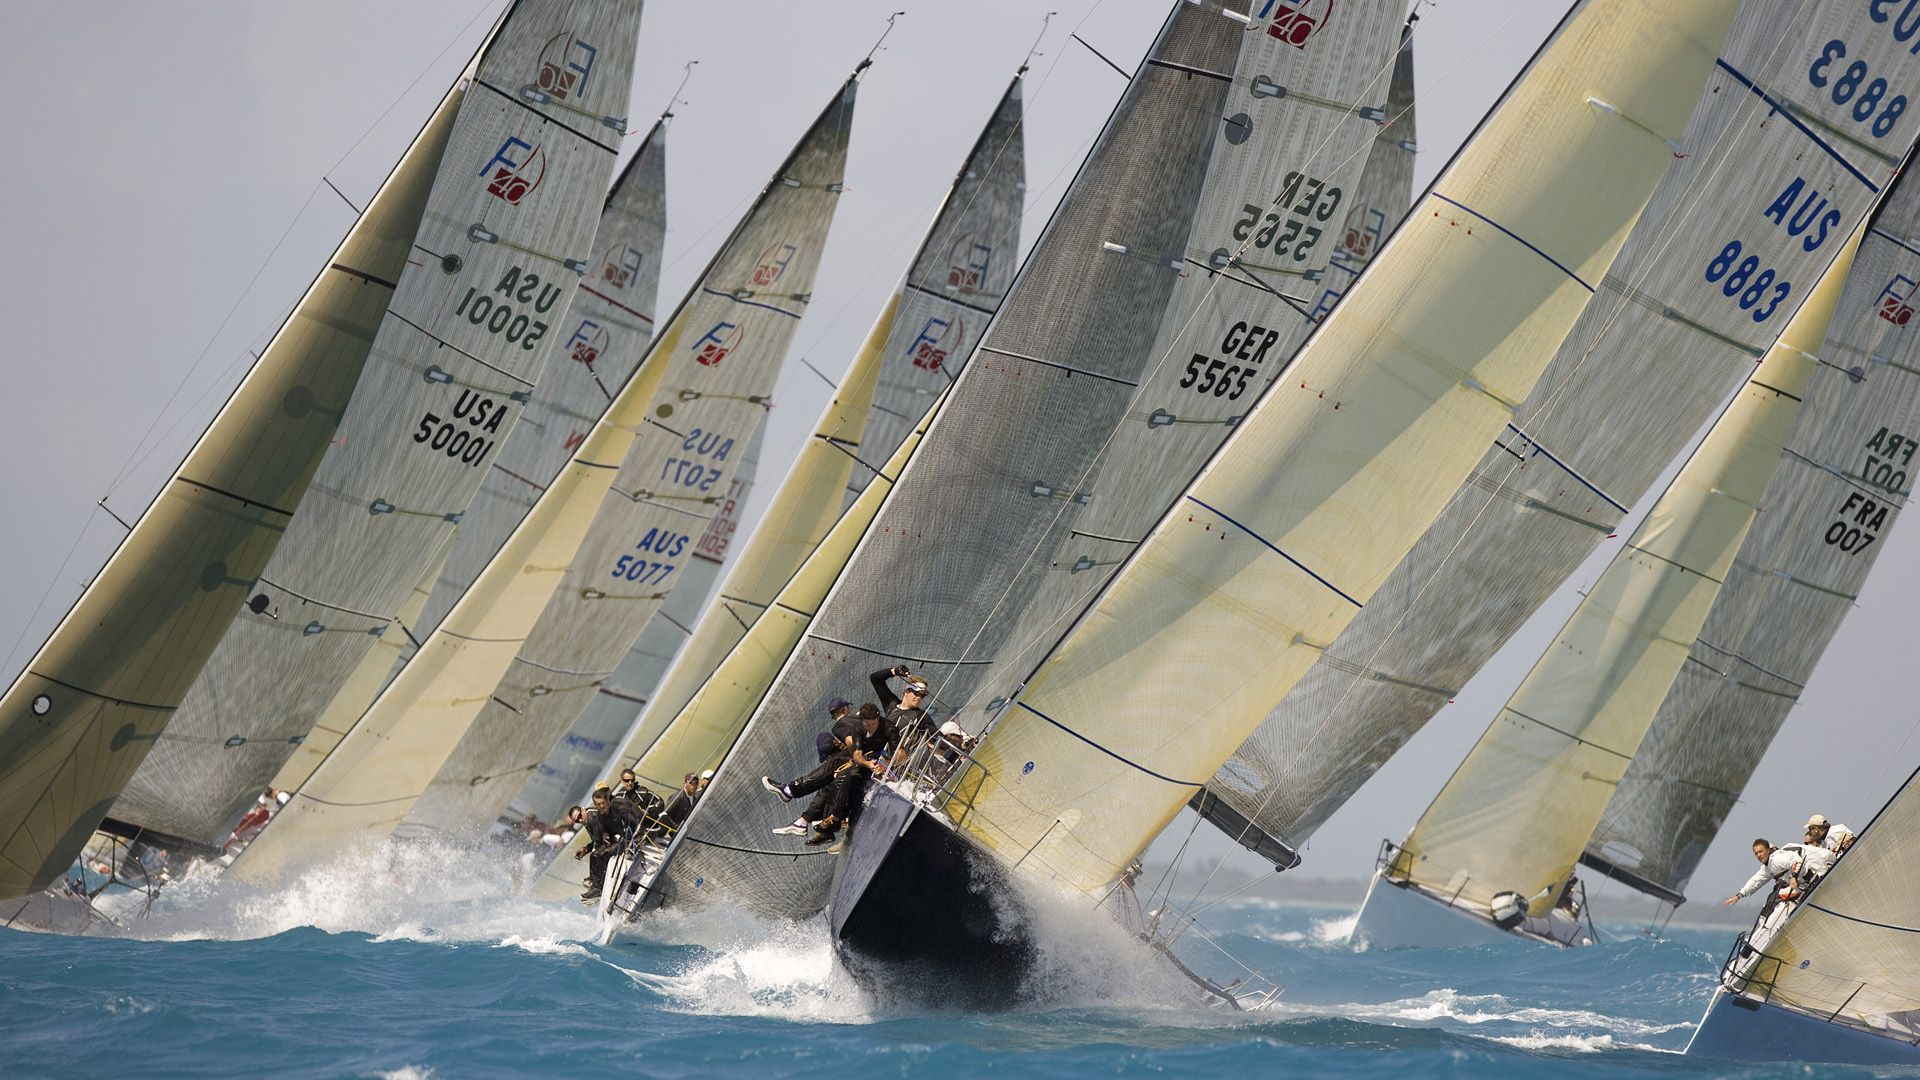 Racing risks and Sailing Academies cover